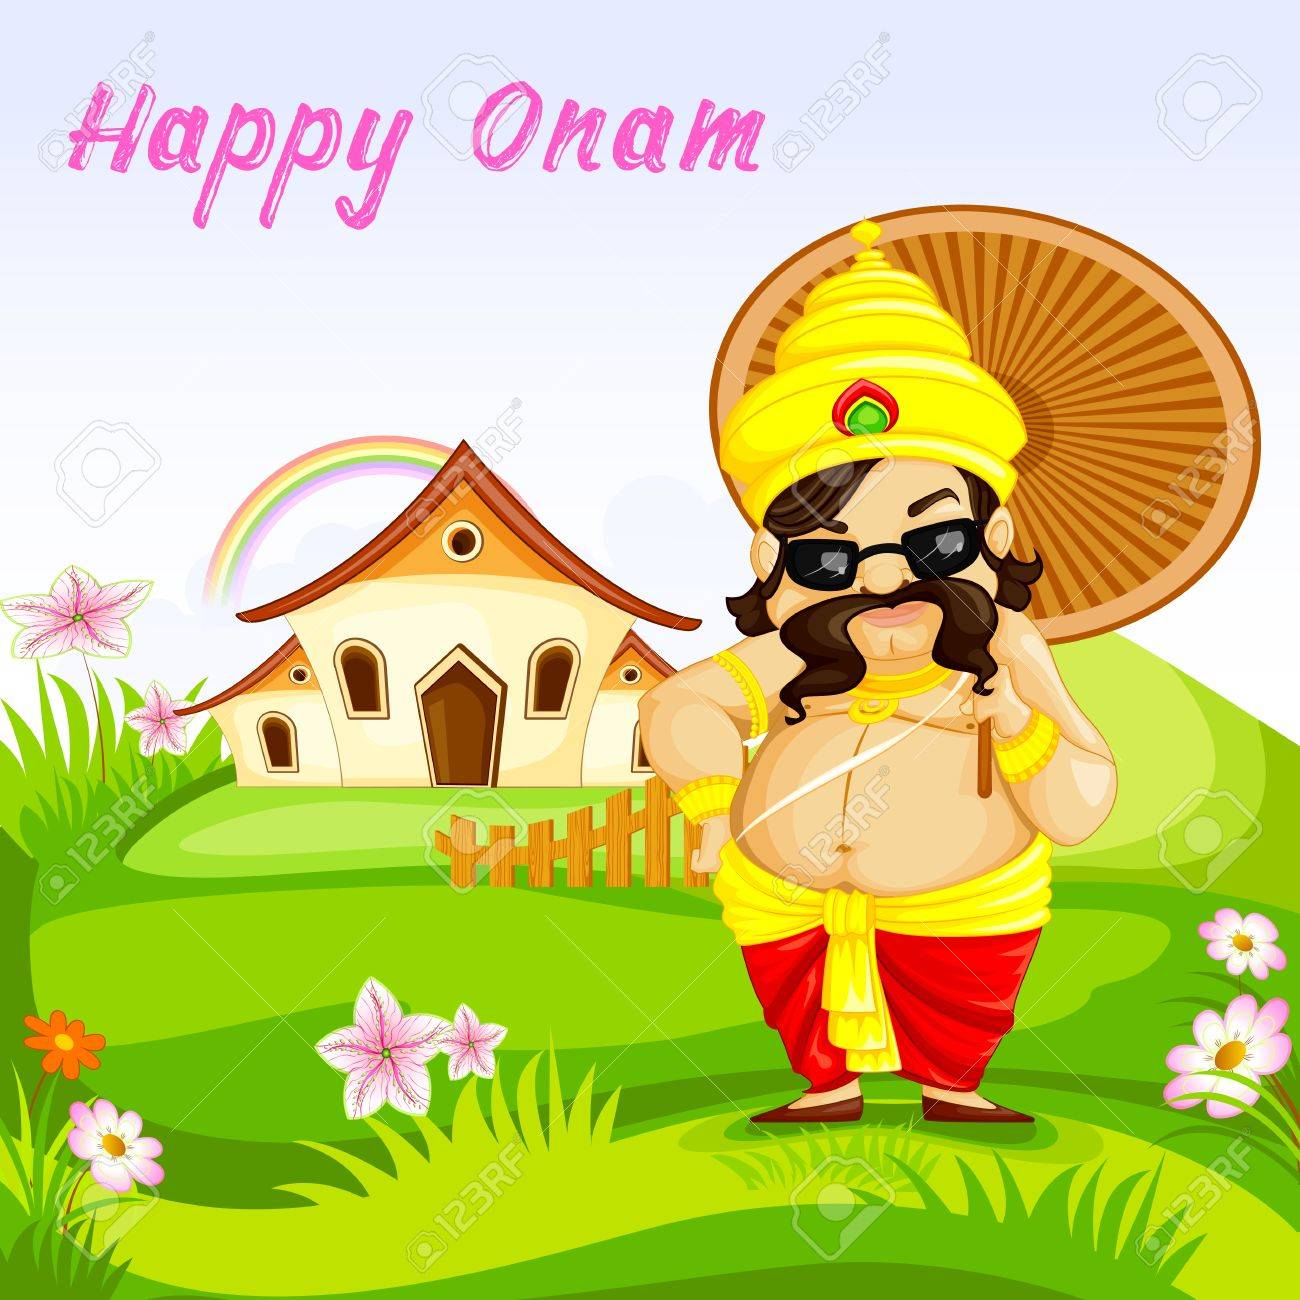 vector illustration of King Mahabali wishing Happy Onam Stock Vector - 22725061